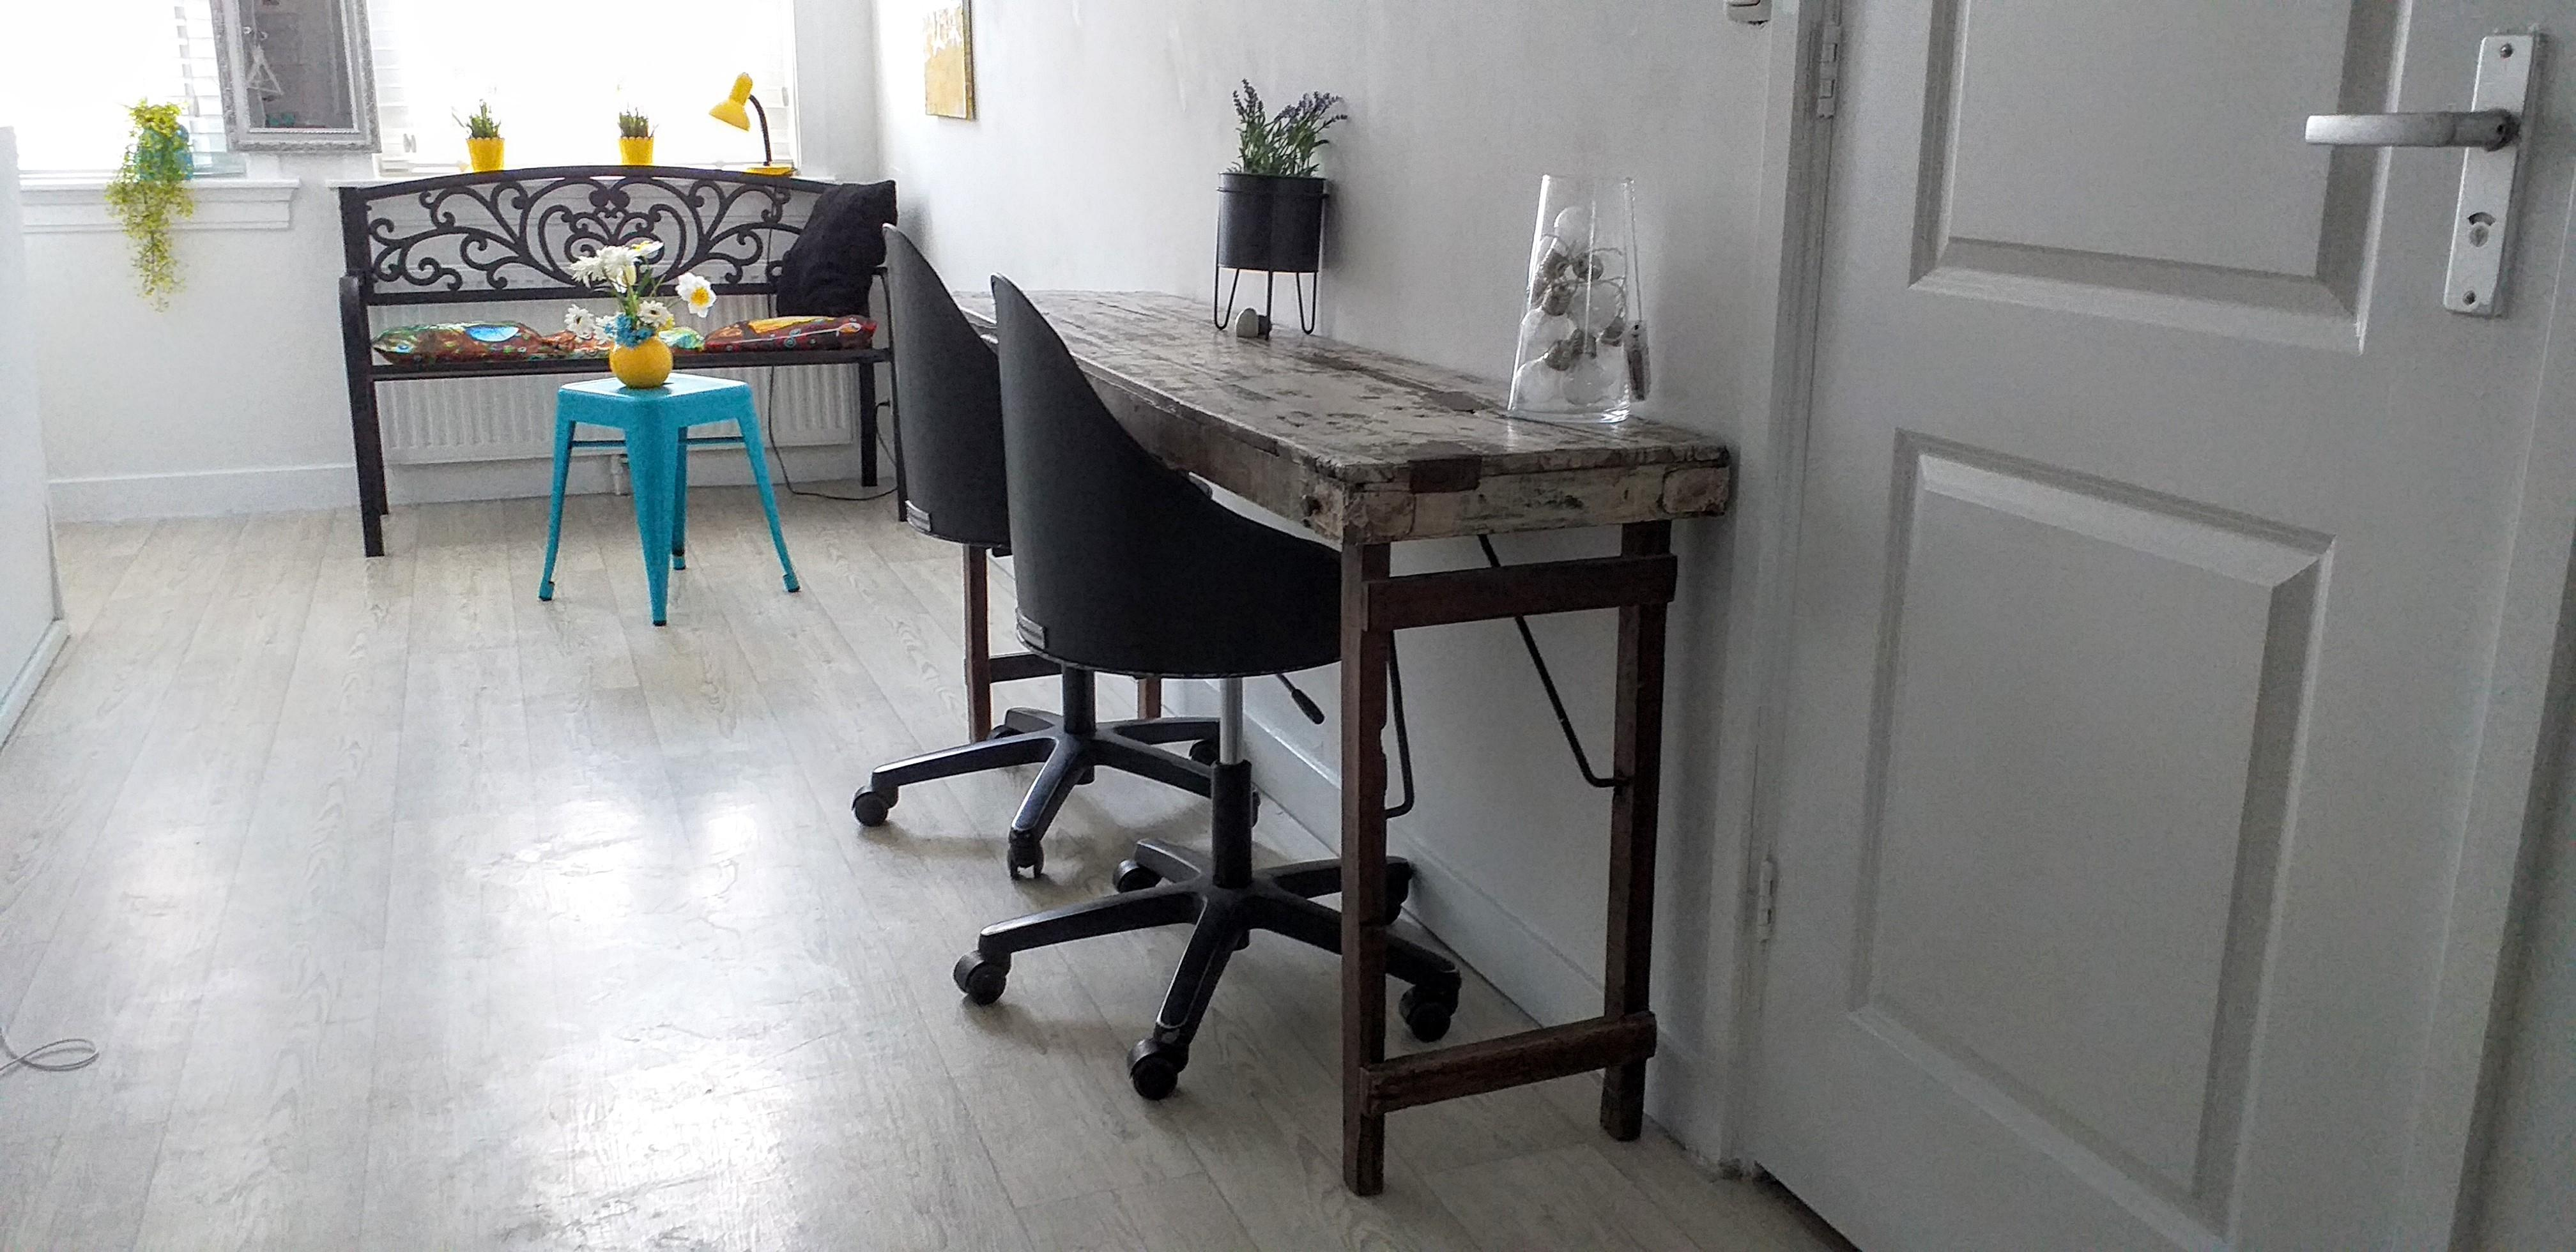 Apartment Clean studio 2 KM  from Anne Frank house  3 KM from Dam Square photo 23229755